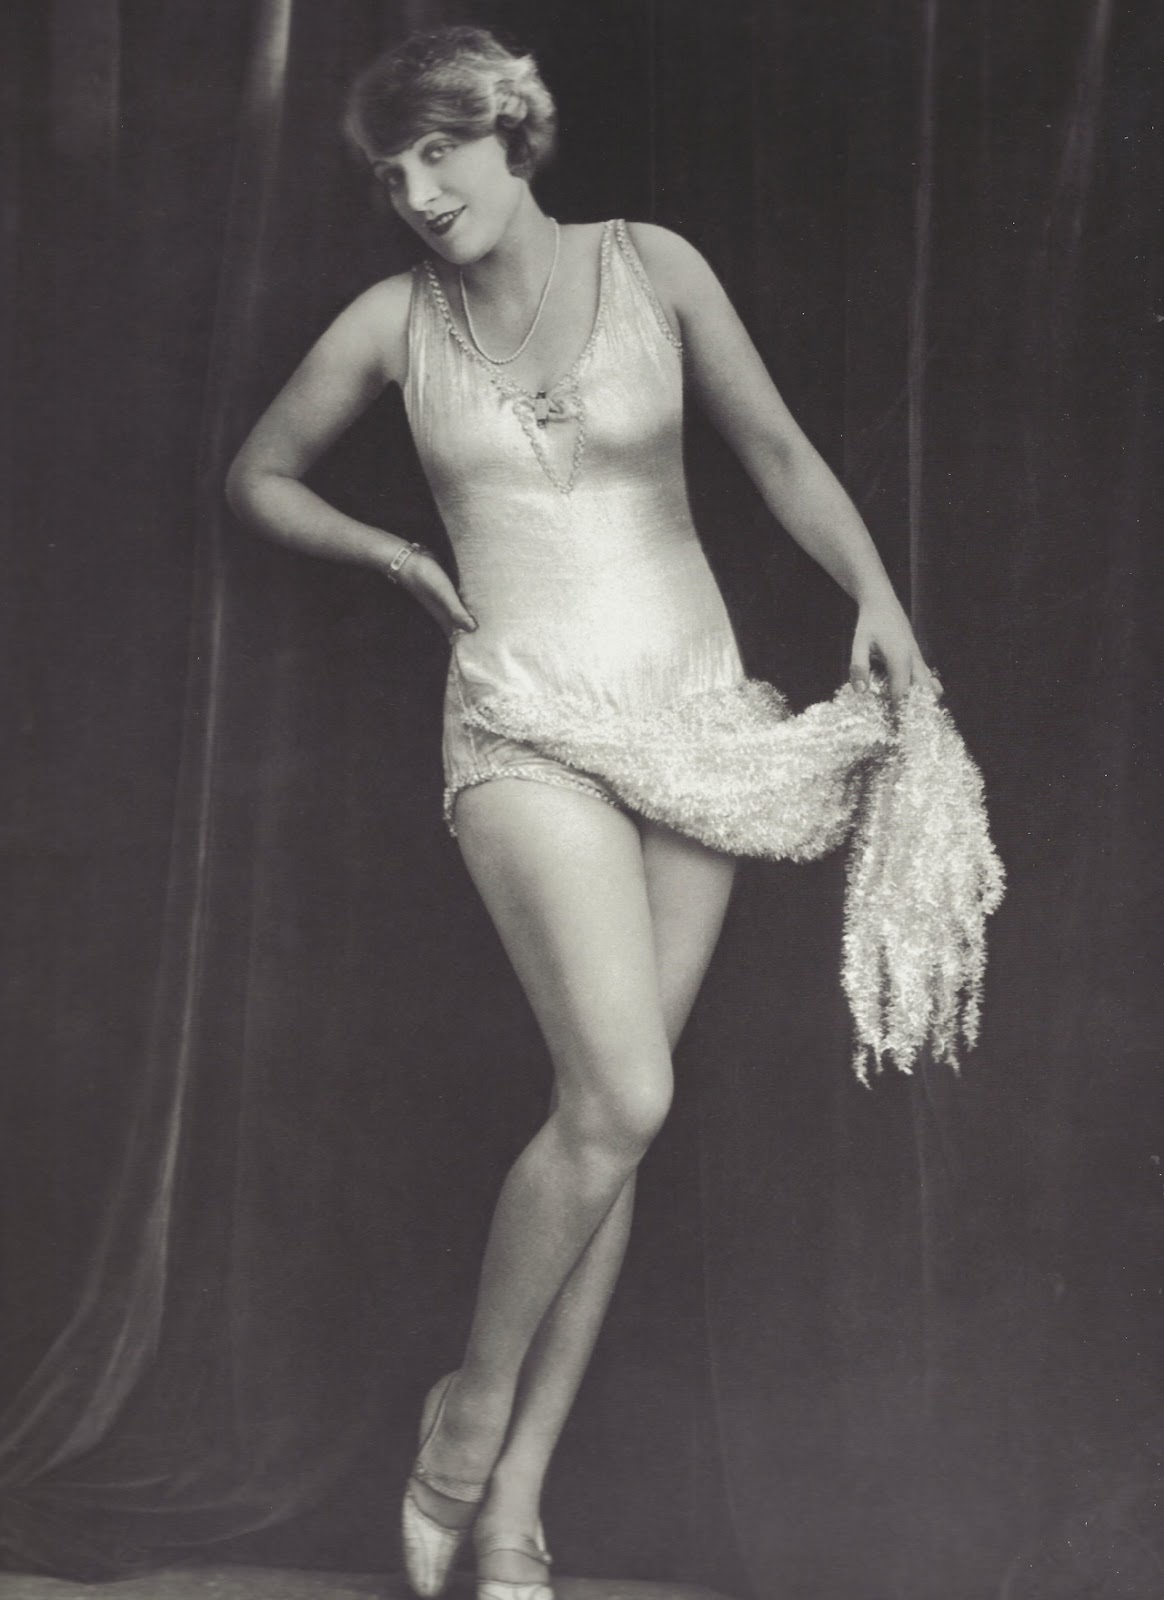 Marlene in the late 20s